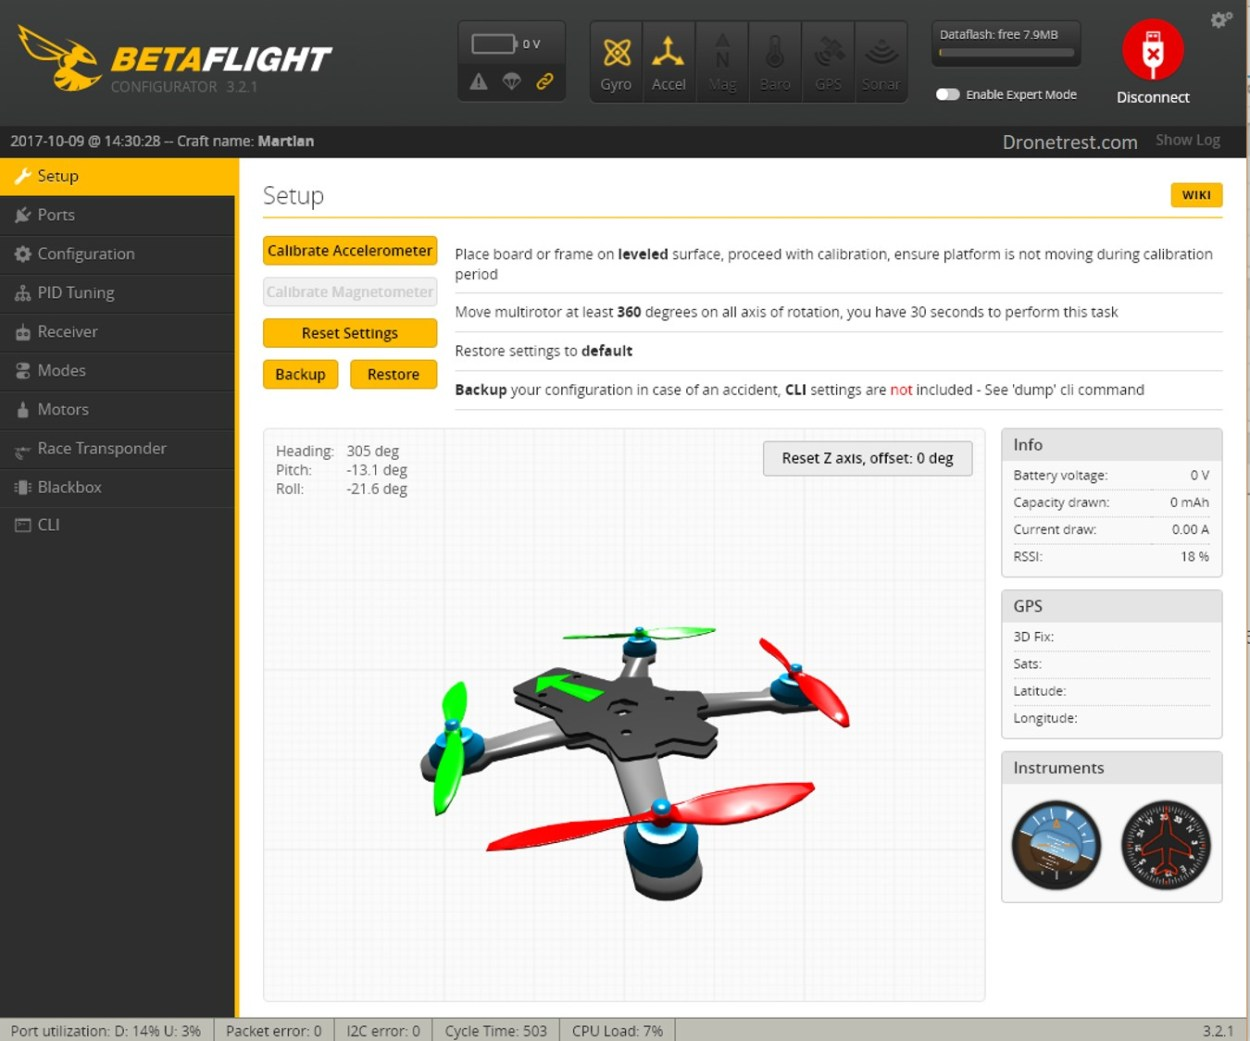 Connected-correctly-betaflight